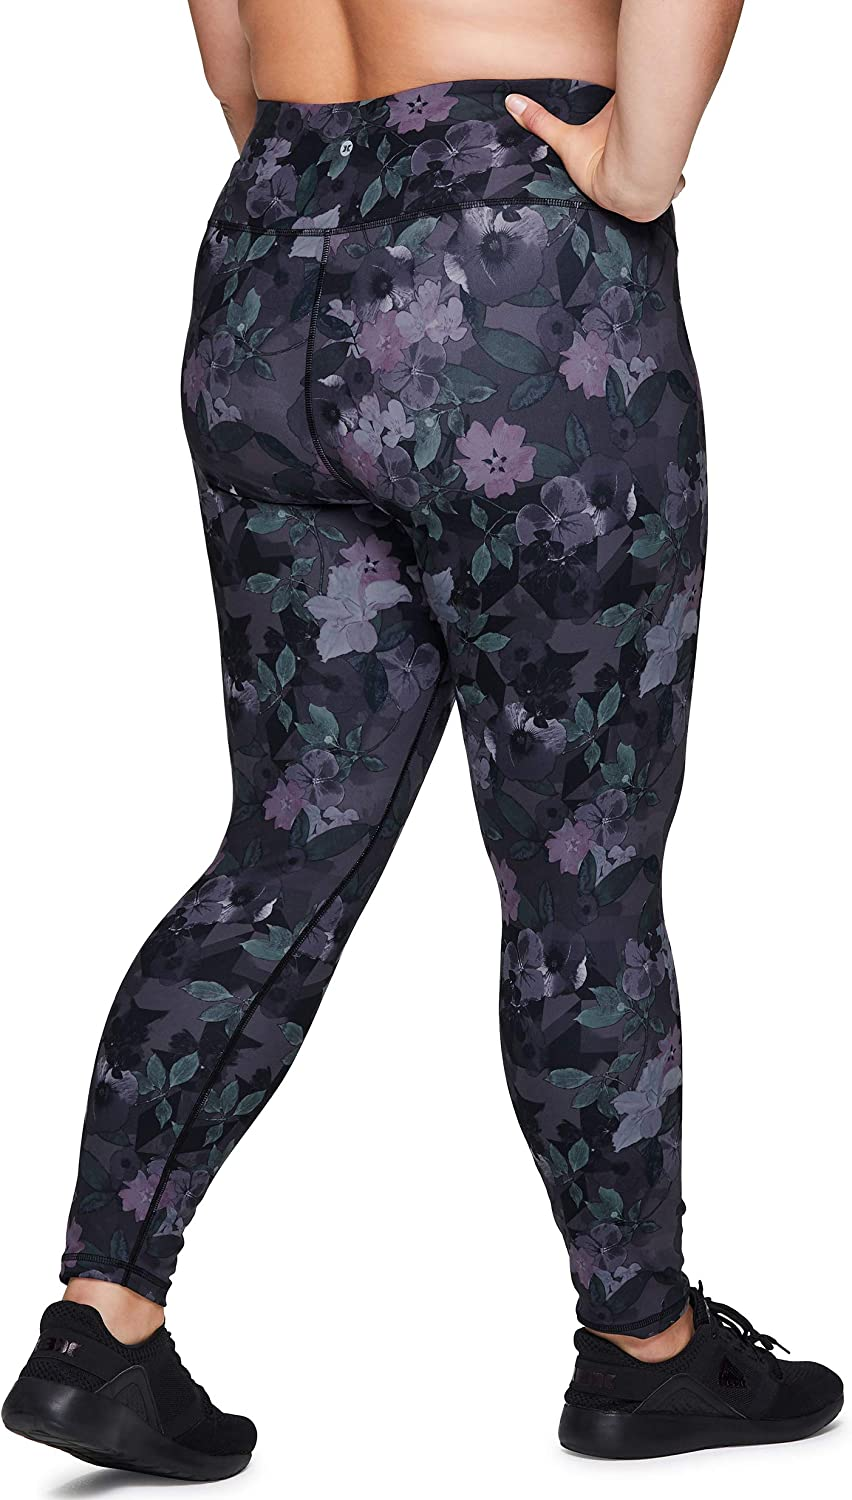 RBX Active Womens Plus Size Stretch Ankle//Full Length Workout Running Gym Yoga Leggings